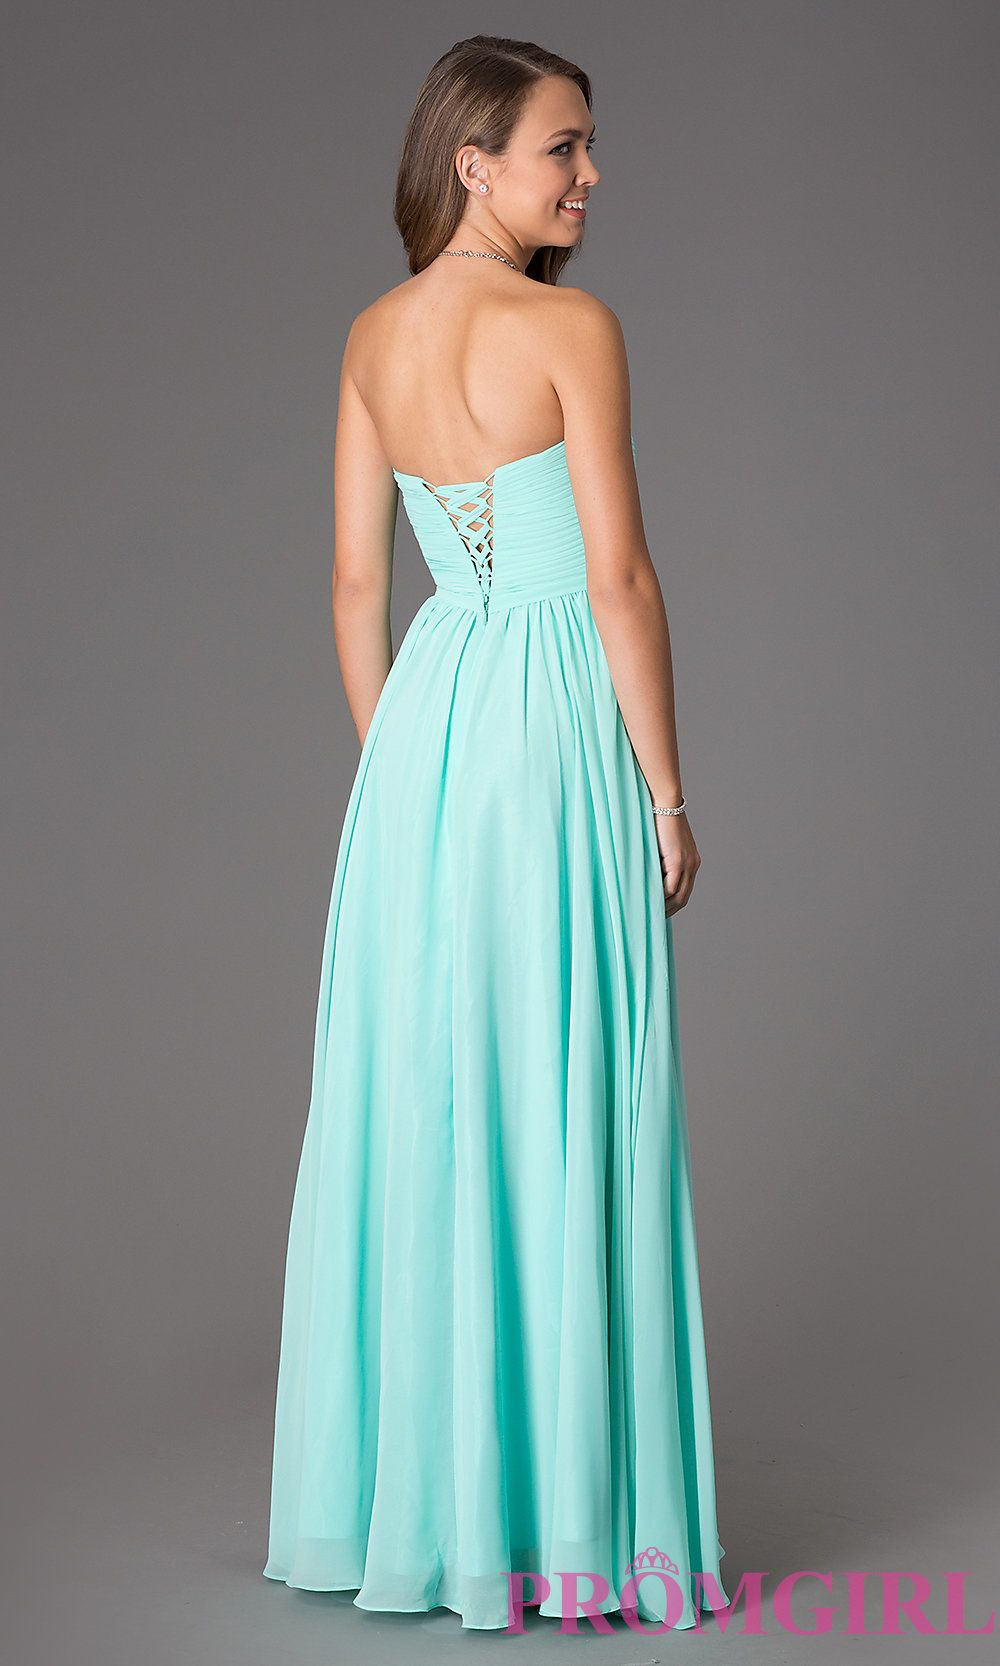 Strapless Prom Dress With Lace Up Back Shops Lace And Prom Dresses